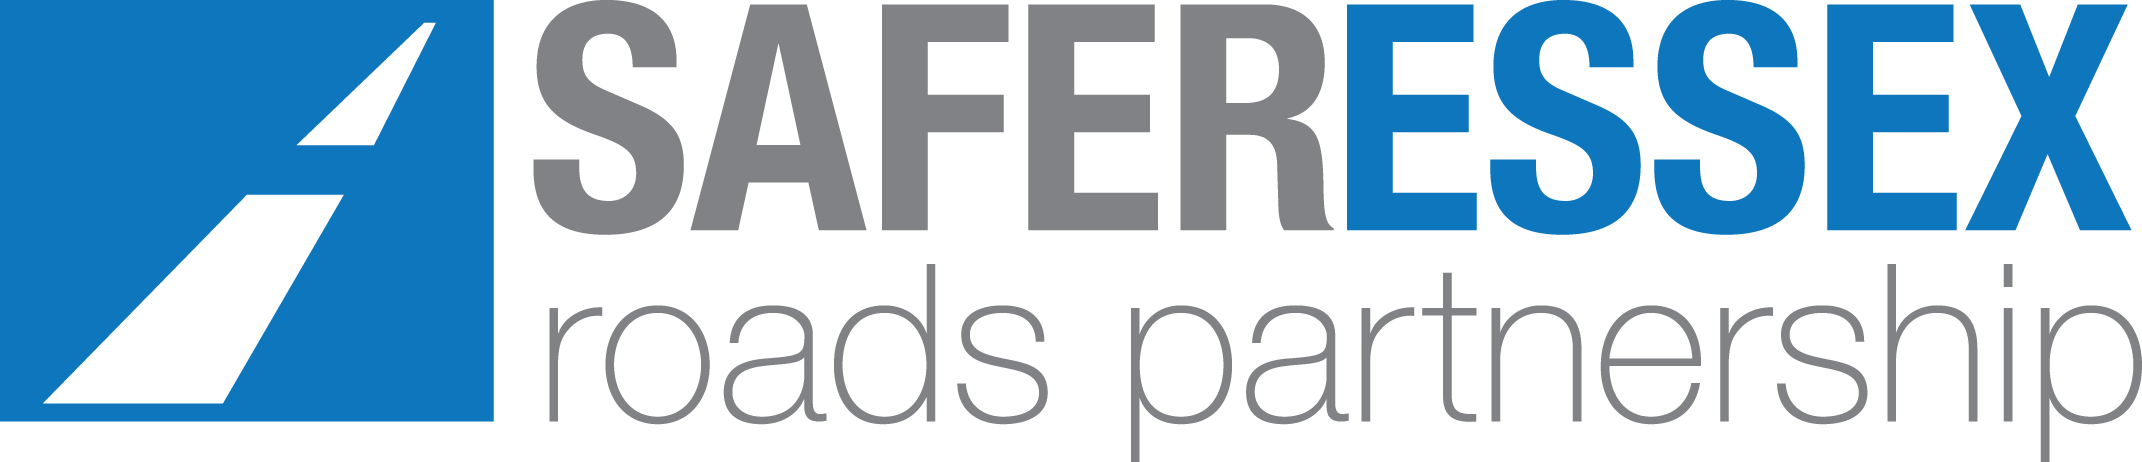 Safer Essex Roads Partnership Logo